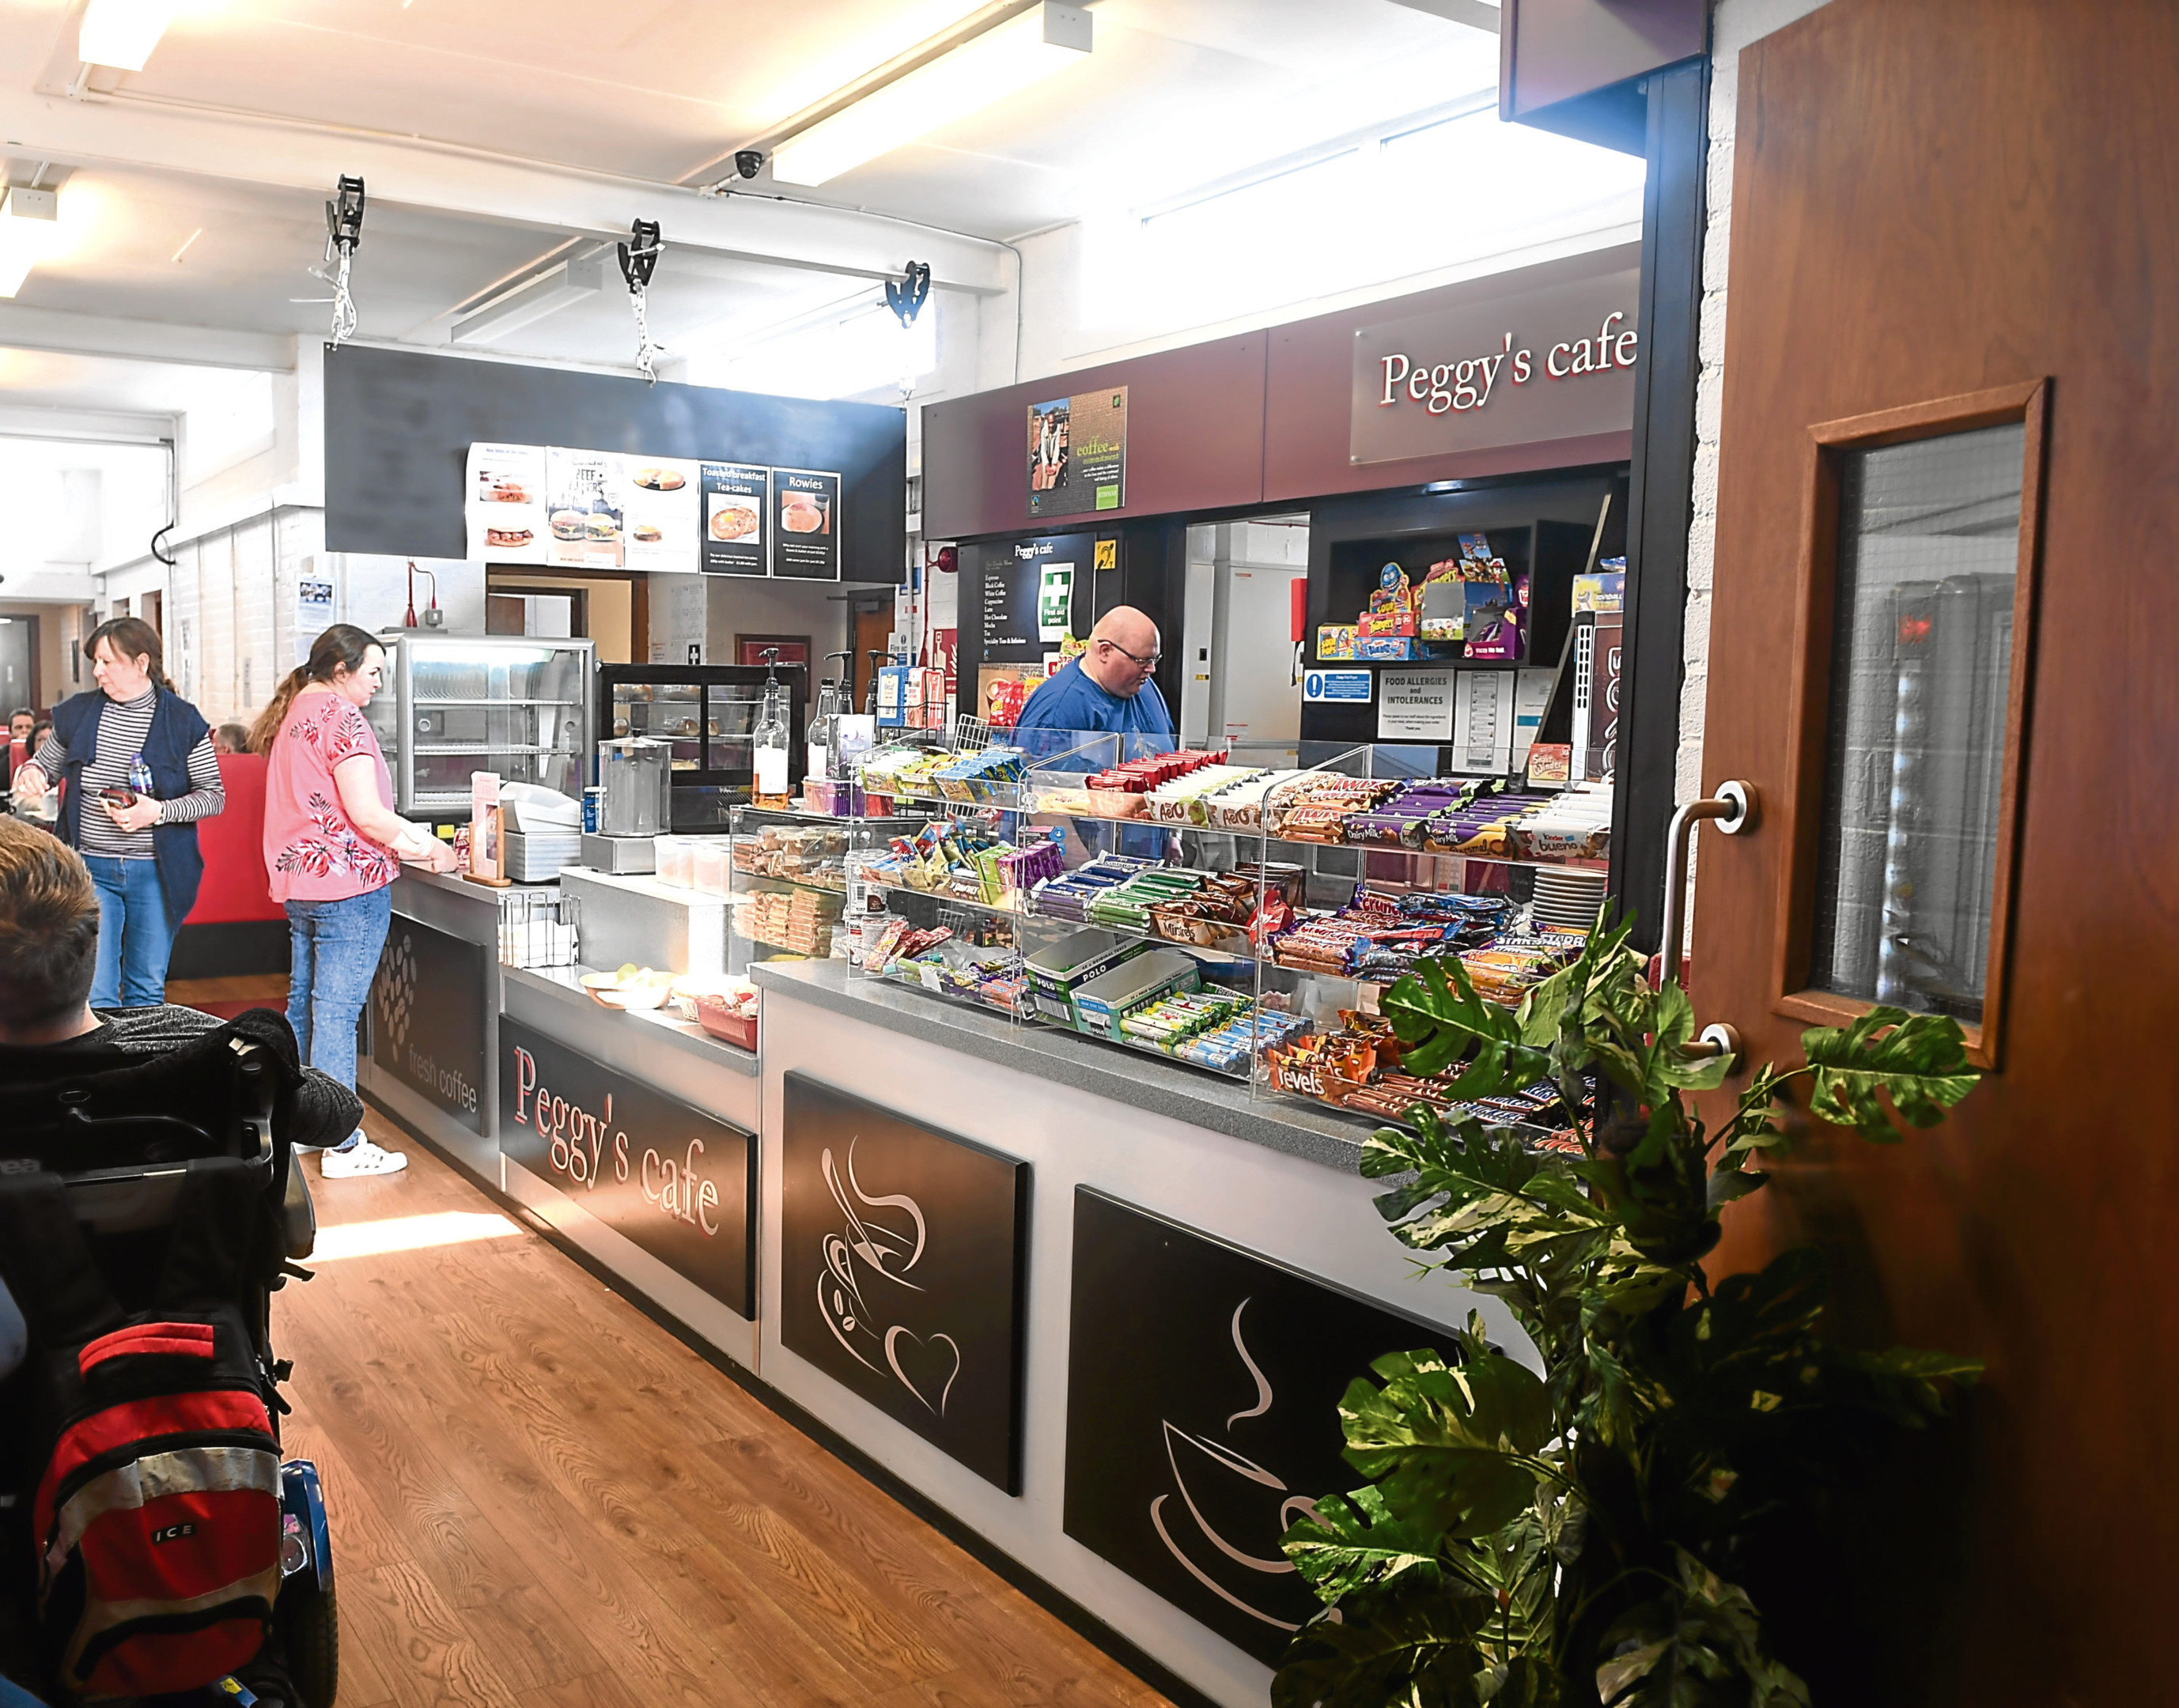 Peggy's Cafe in Inchgarth Community Centre is marking its fifth anniversary.